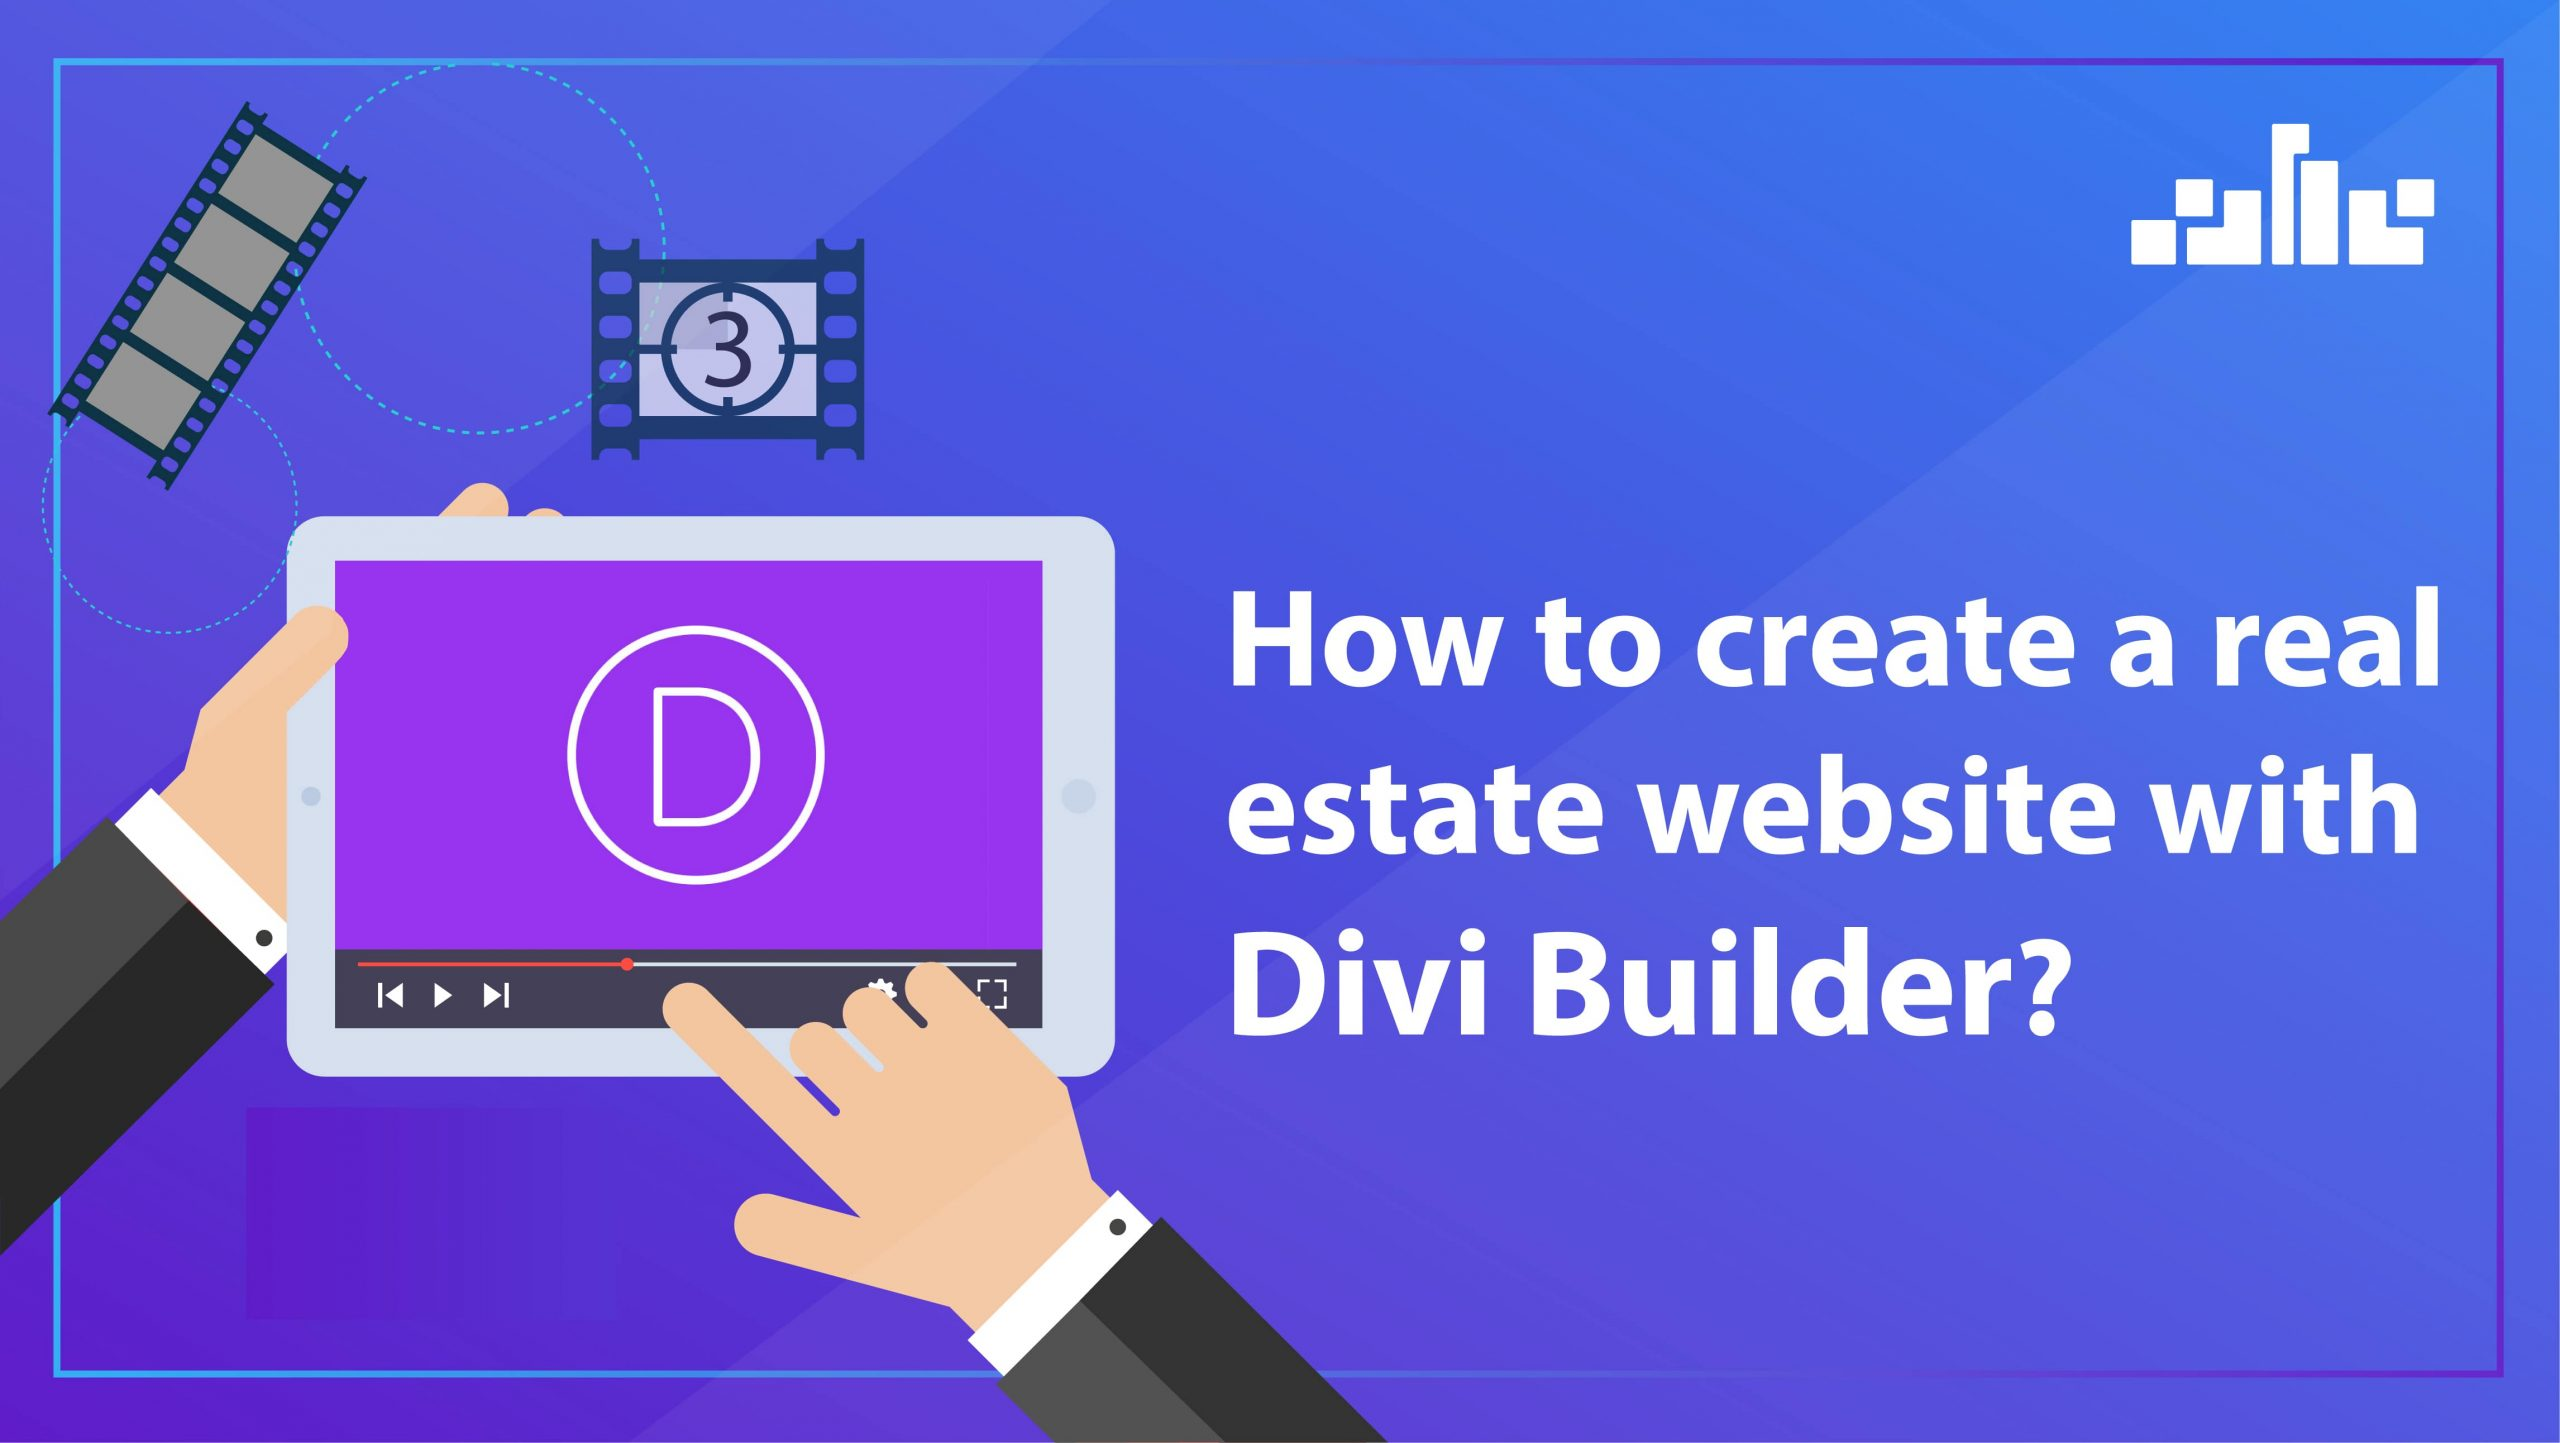 How to create a real estate website with Divi Builder